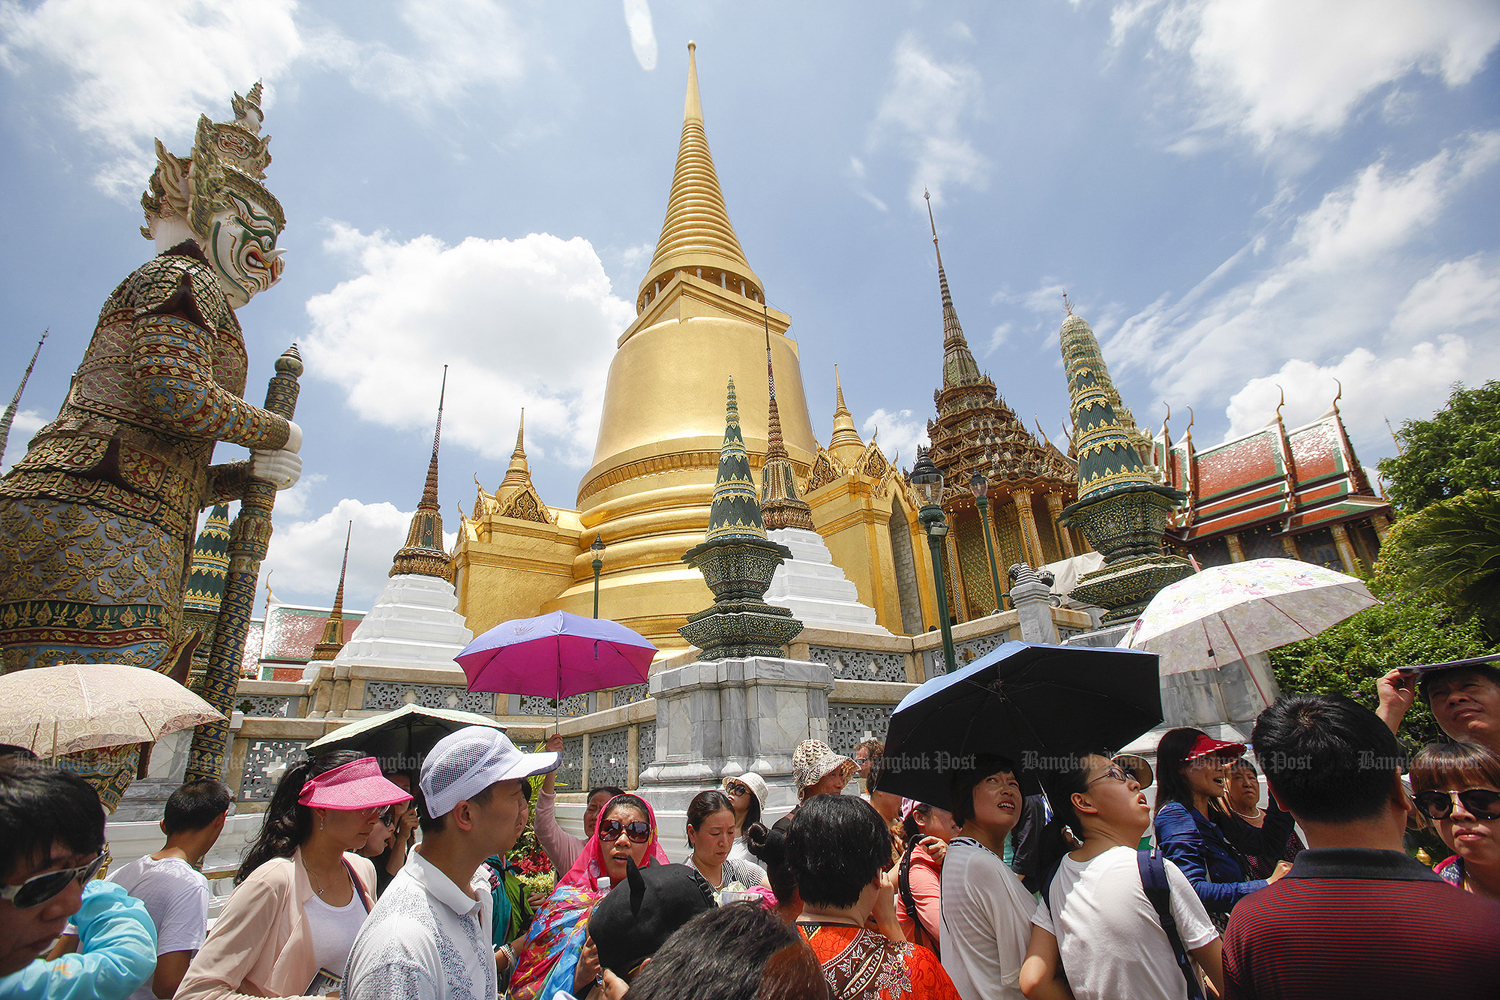 Section 44 is used to bring more than 20,000 illegal hotels and accommodation services nationwide under better state control and boost safety for visitors to Thailand. (Bangkok Post photo)